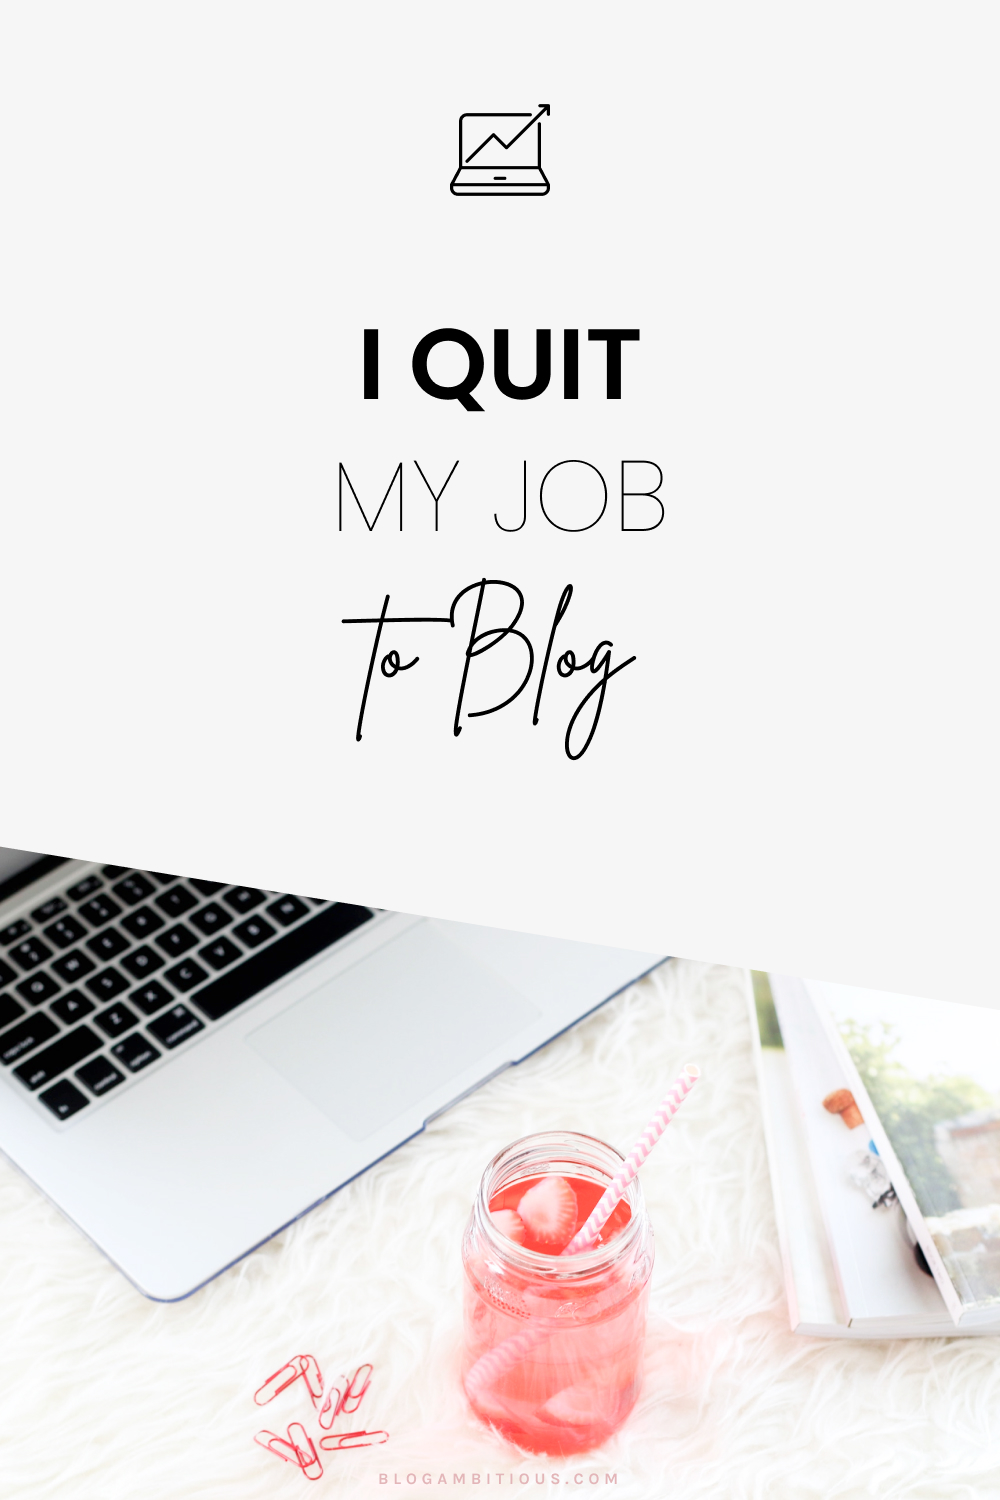 Quit My Job To Blog